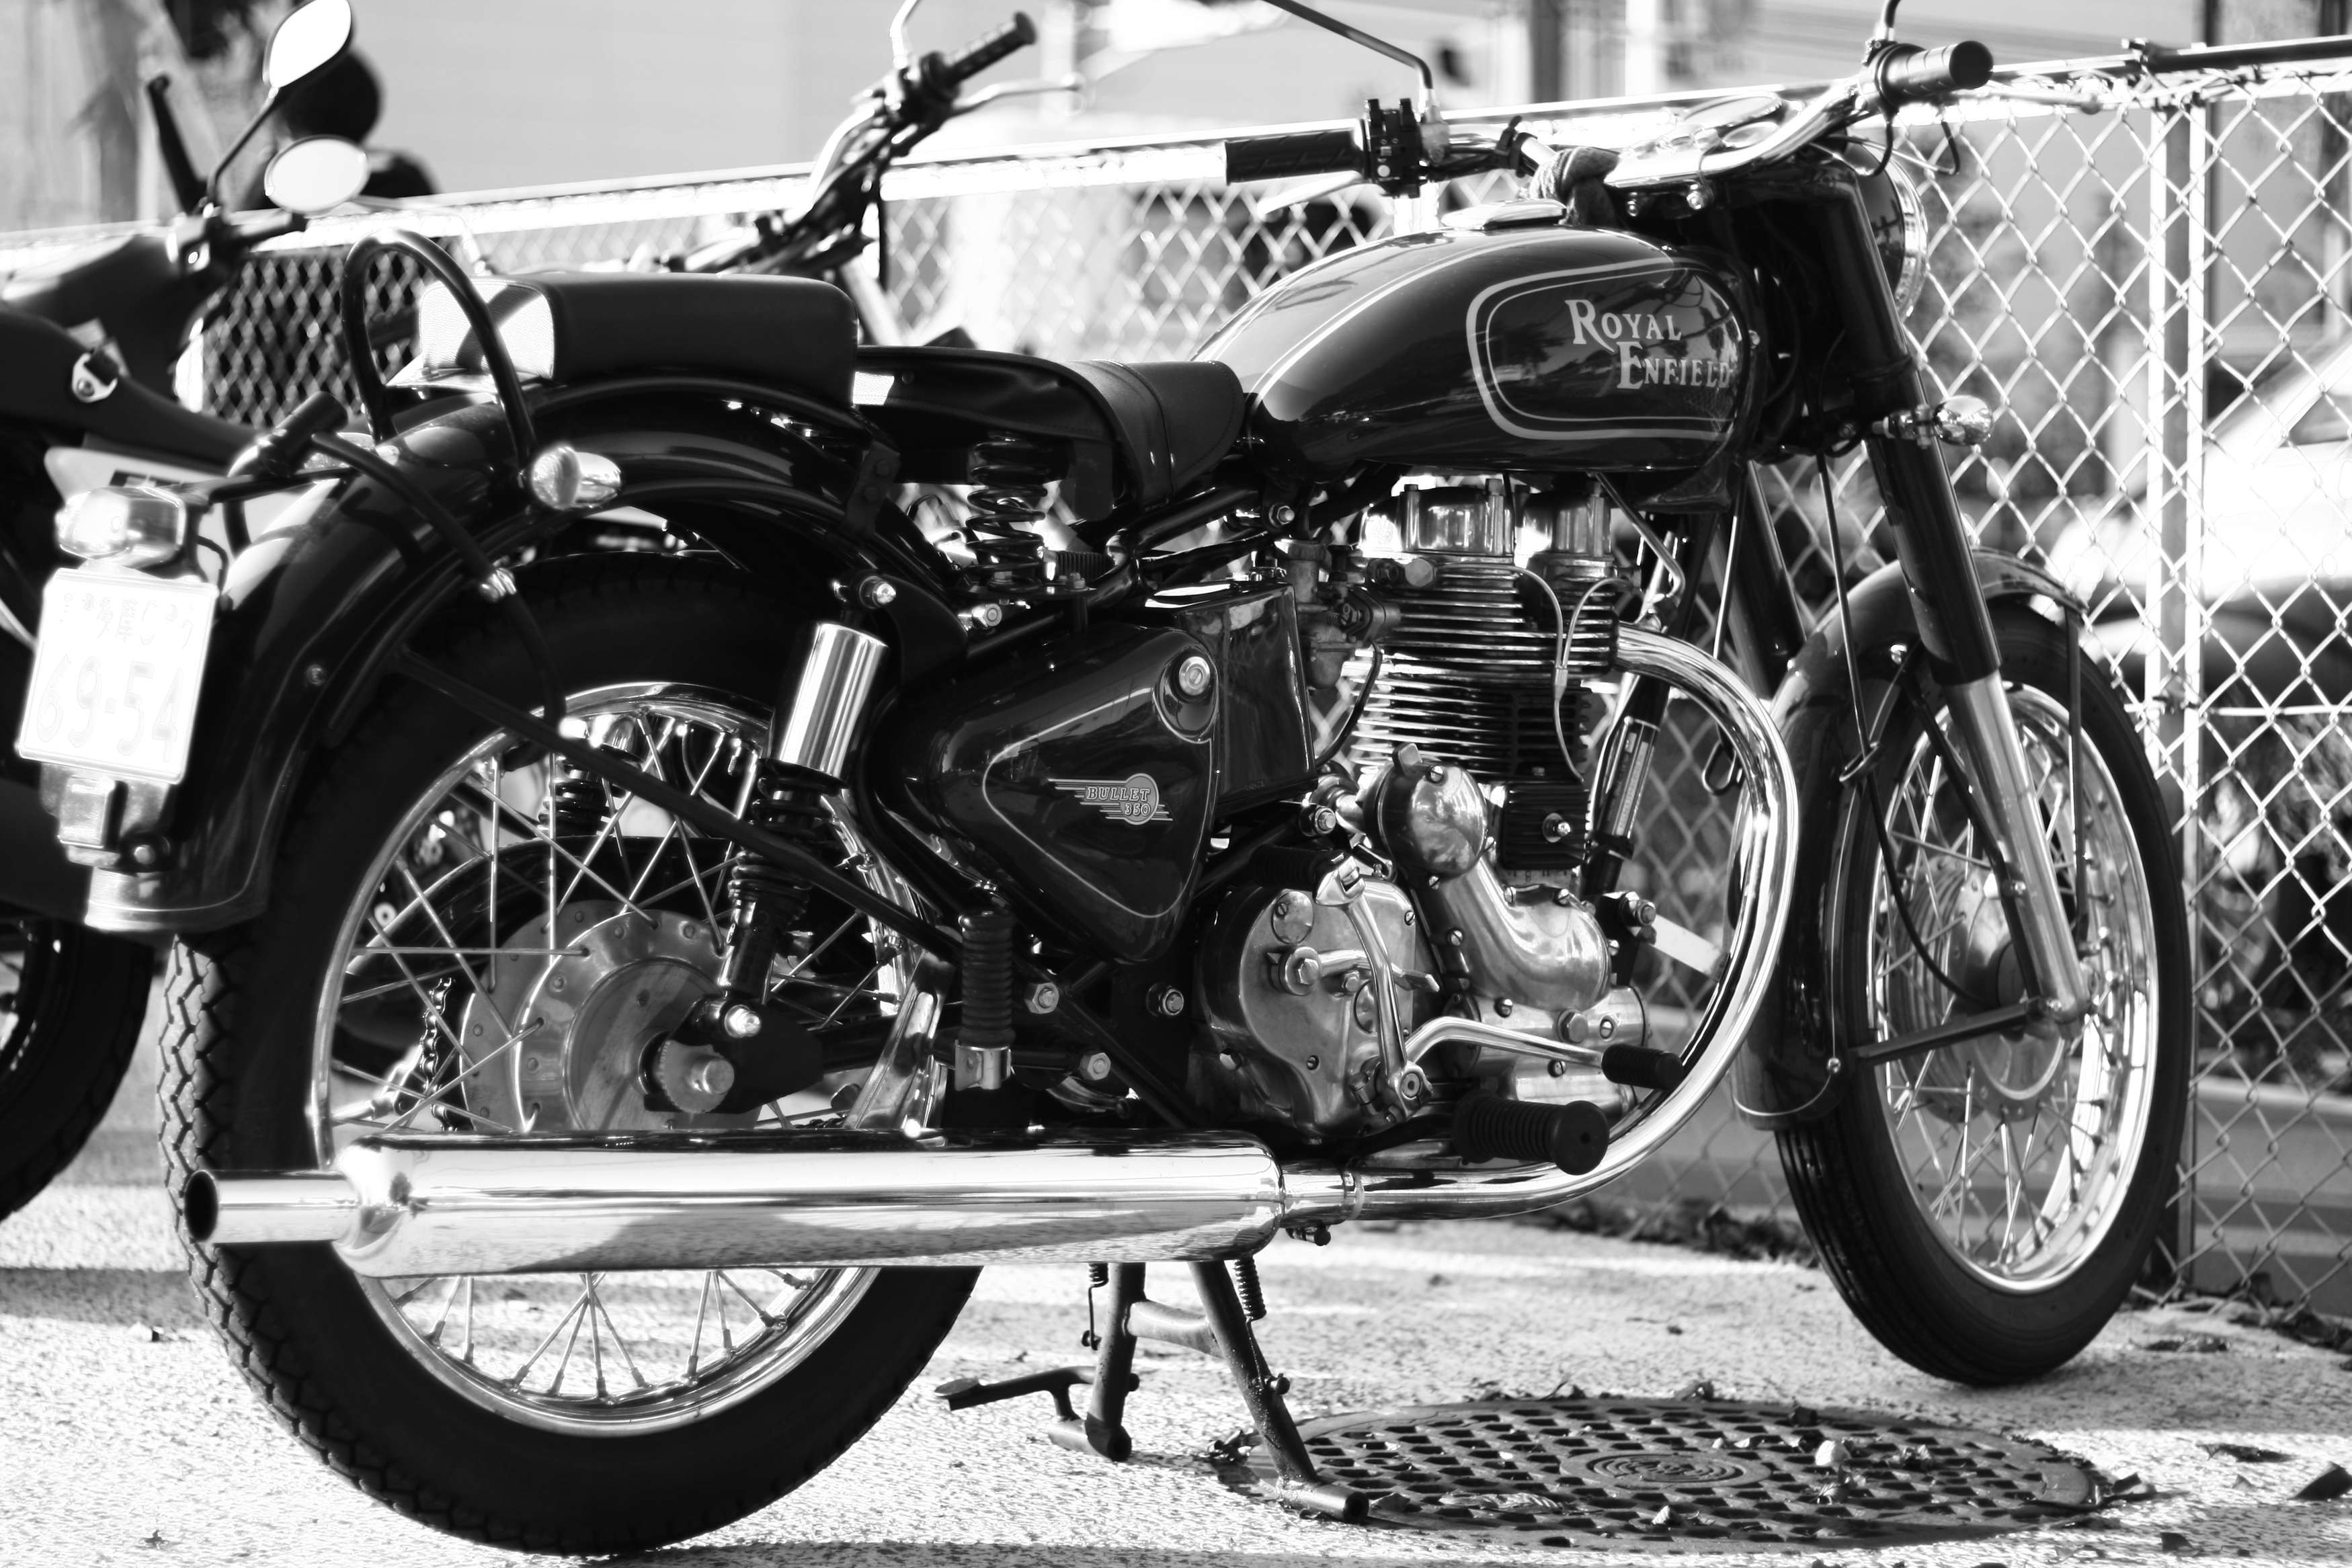 Royal Enfield Bullet 350 #8363649